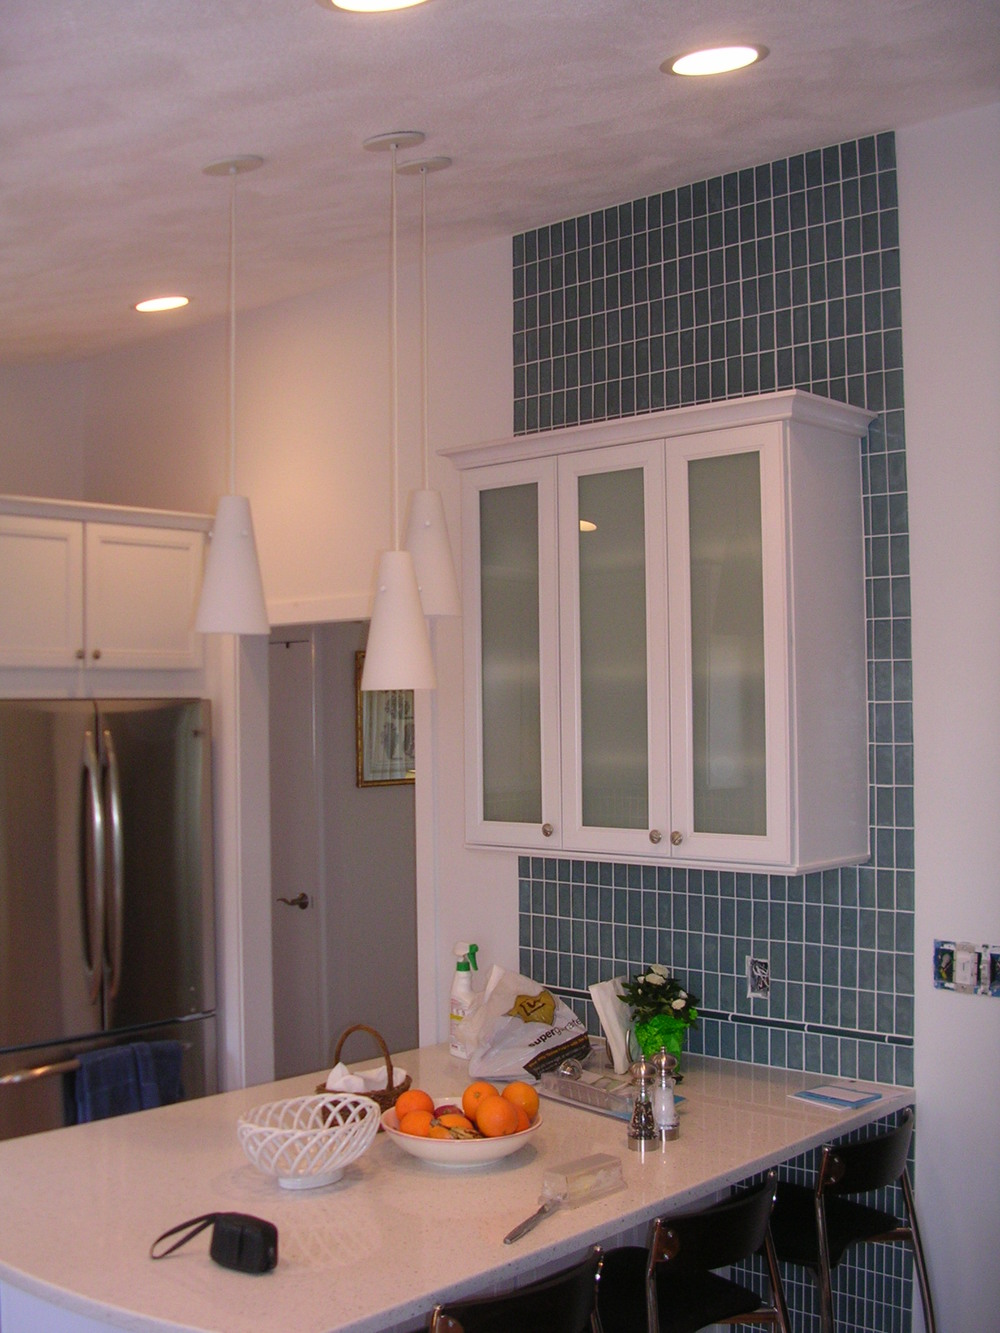 1 Eat-In Peninsula with Glass Tiles Medfield  Crossen.JPG